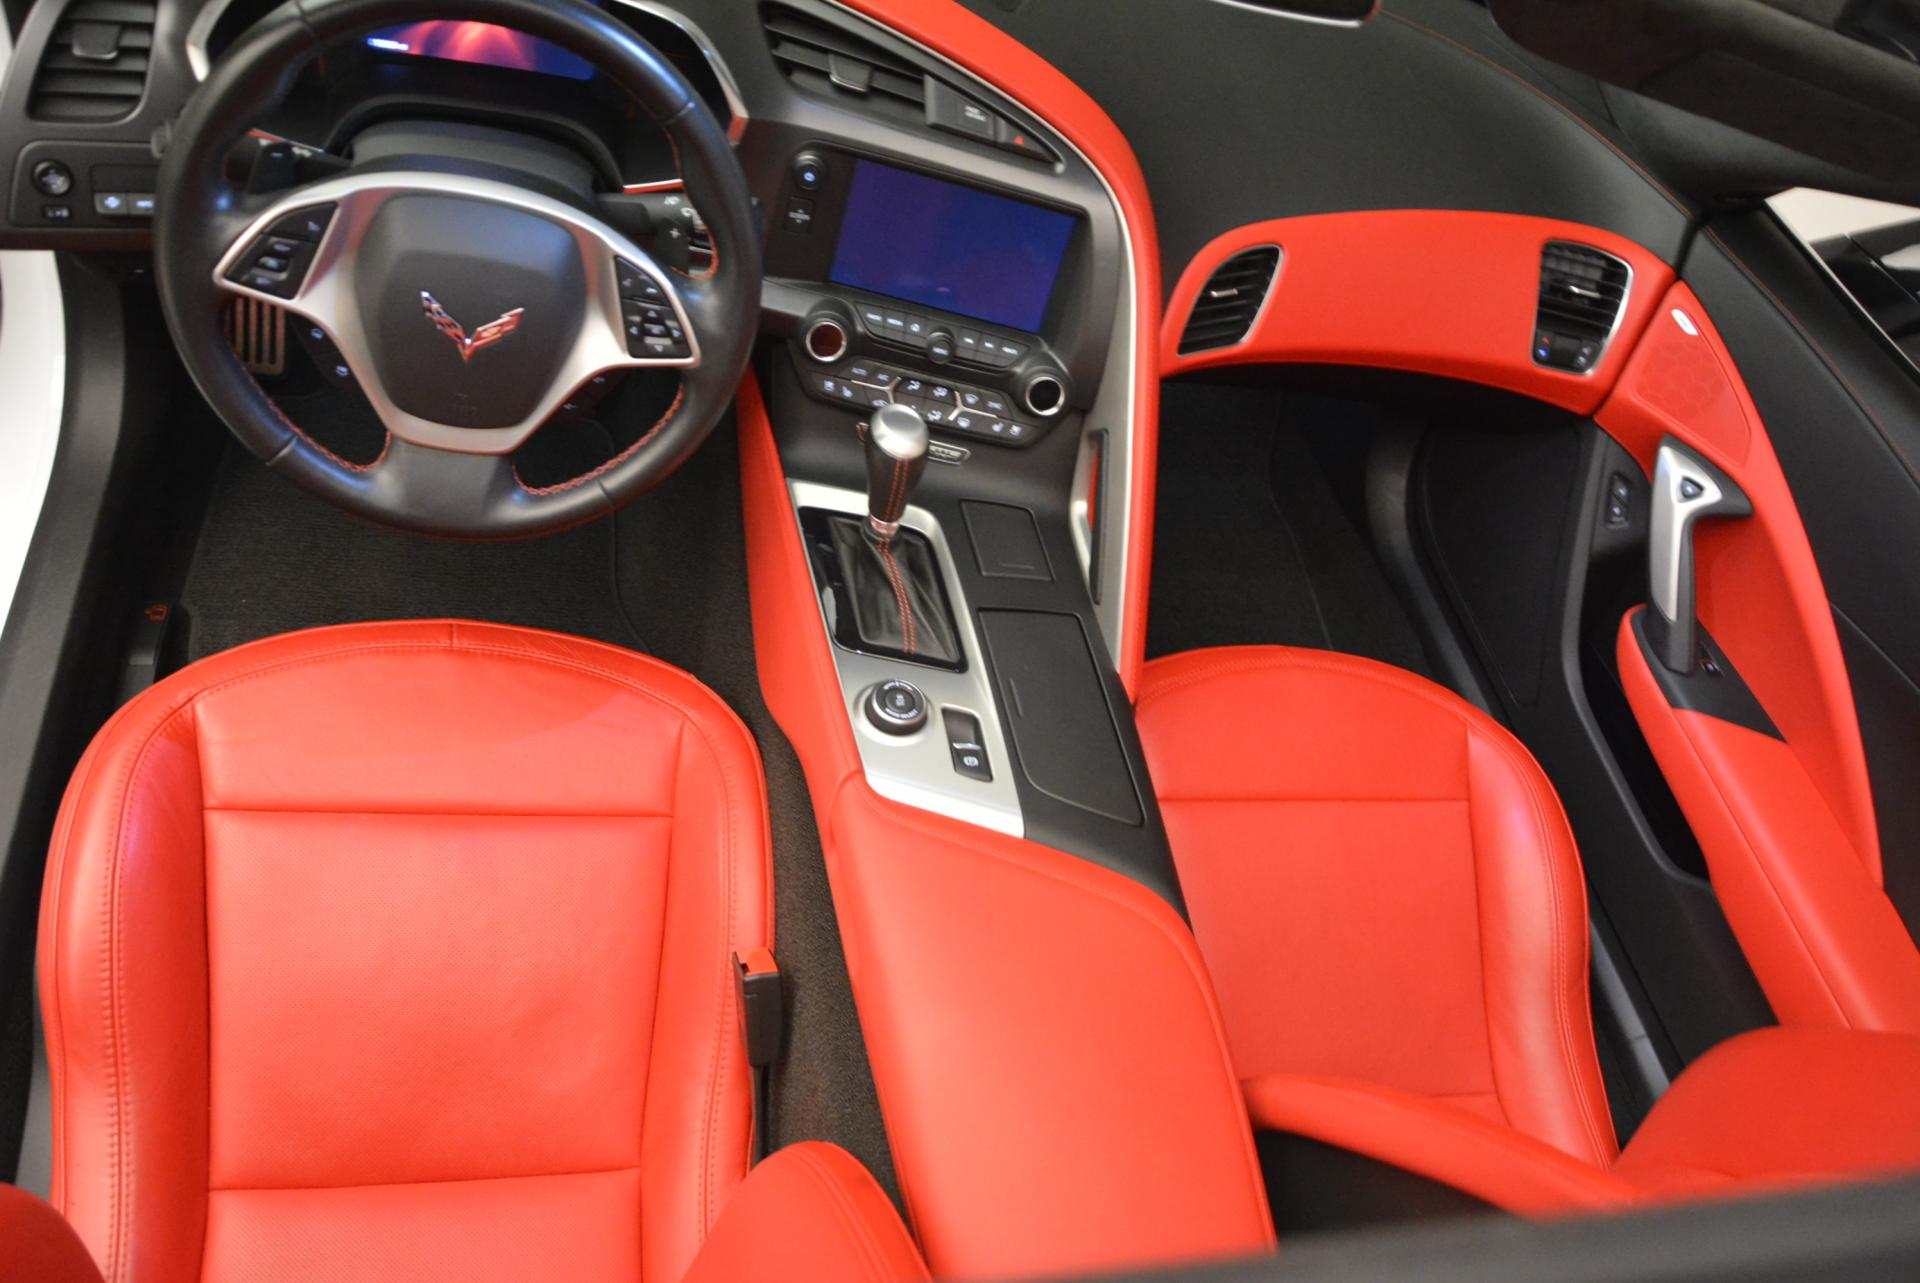 Used 2014 Chevrolet Corvette Stingray Z51 For Sale In Greenwich, CT. Alfa Romeo of Greenwich, 7089 529_p17